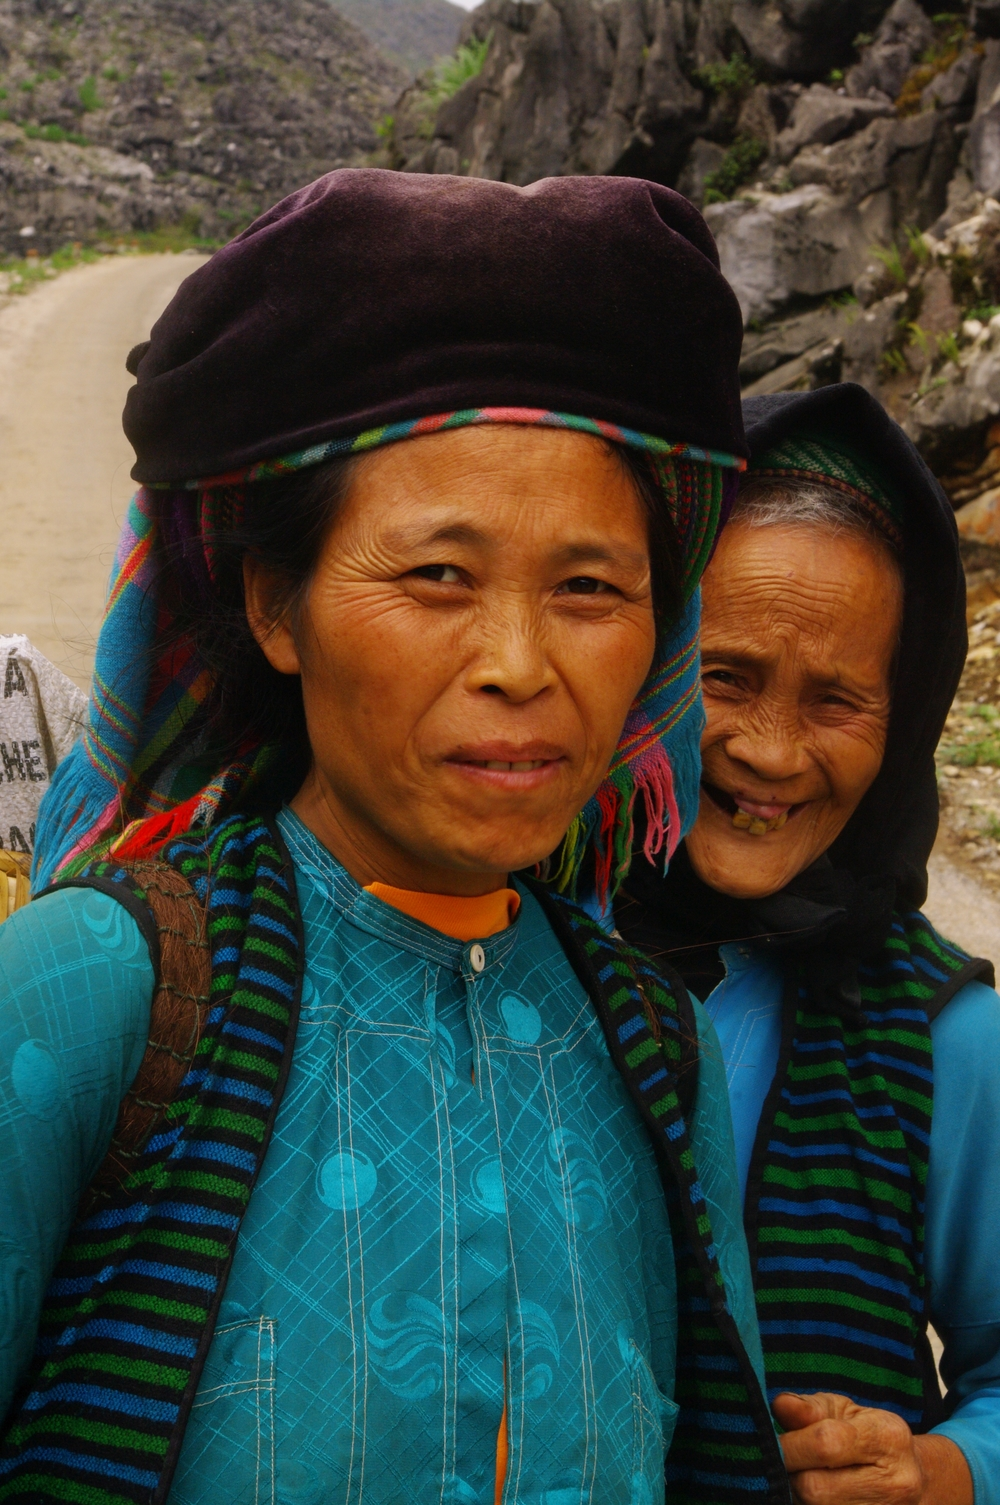 Photo: White Hmong mother and daughter in Ha Giang, Vietnam © Pachot | Dreamstime.com